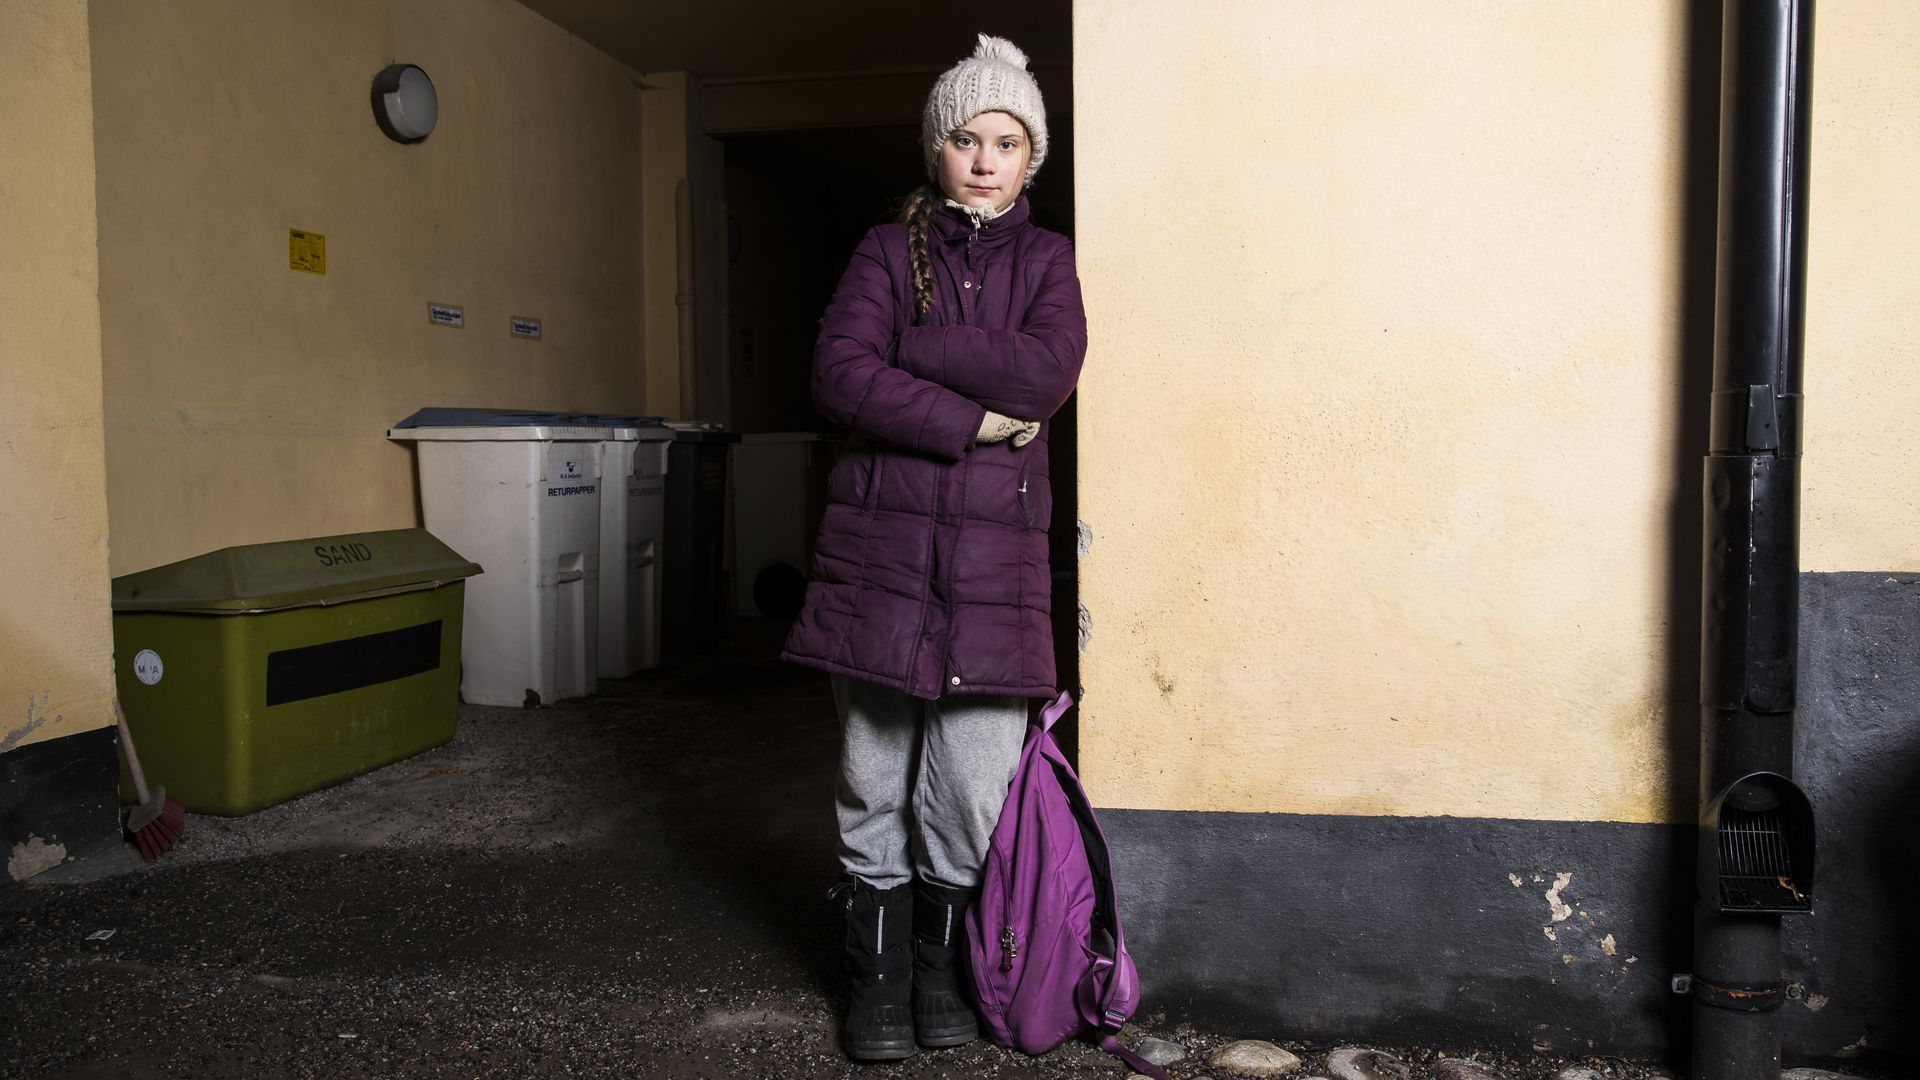 In this image, Greta stands in a puffy winter coat and hat while leaning against a wall, with a bookbag near her.